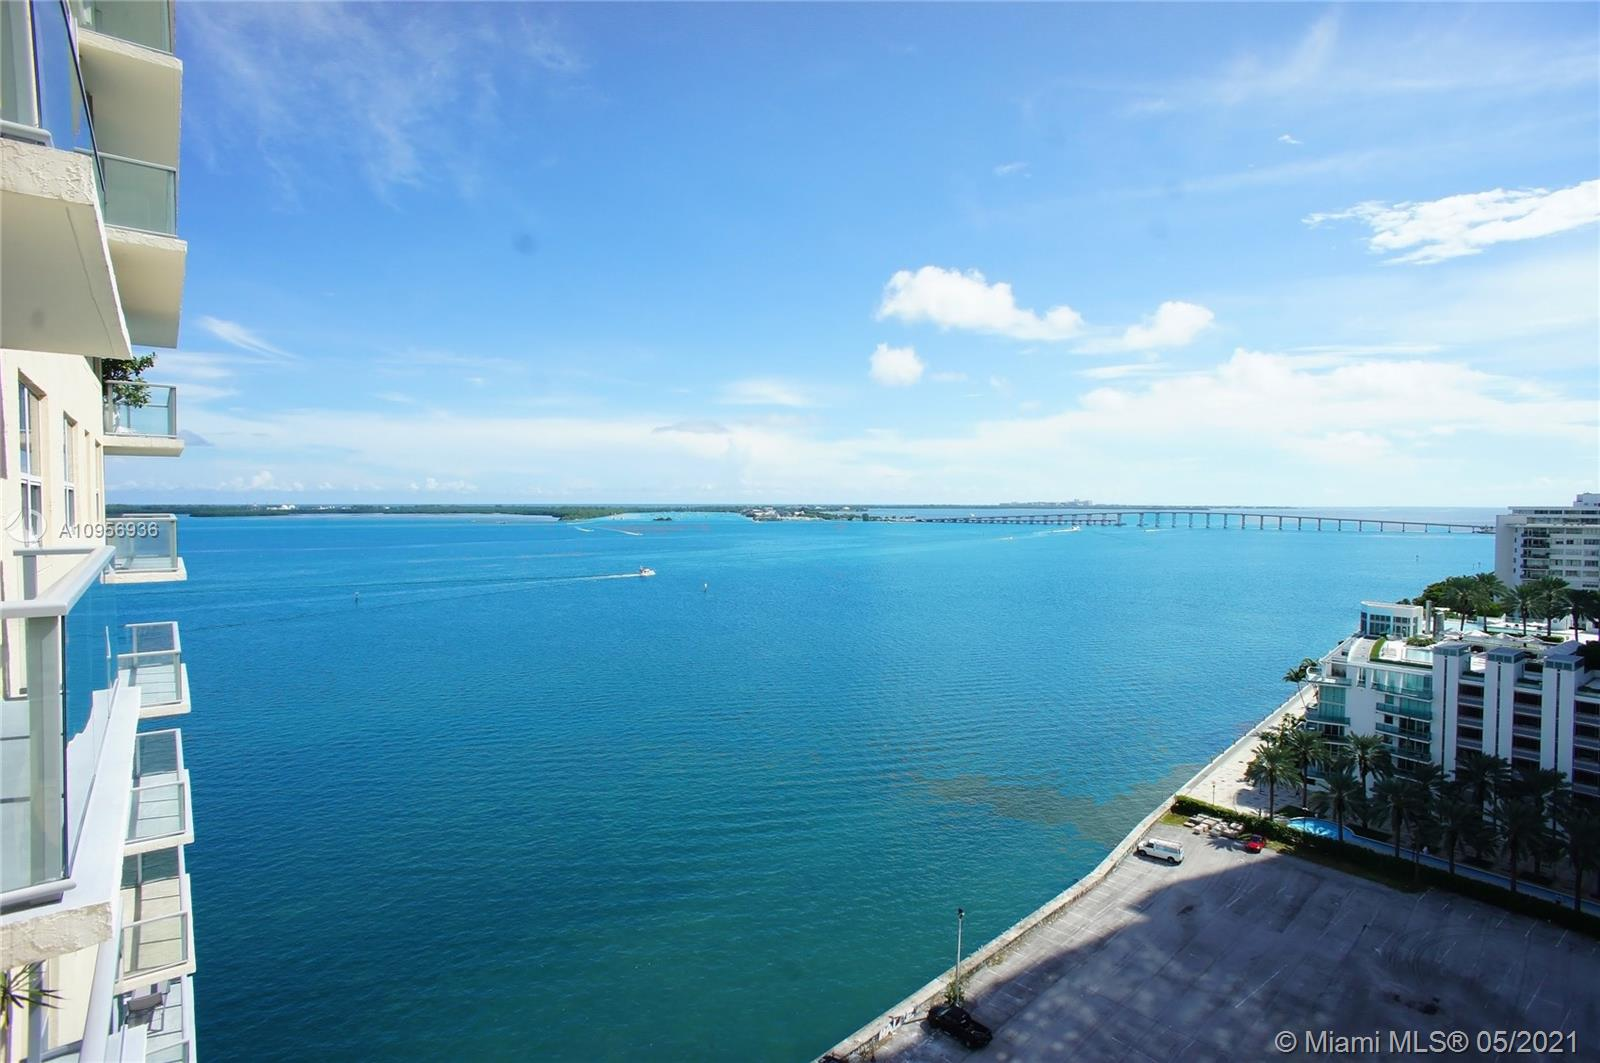 Amazing Water Views to the Ocean, Biscayne Bay, and the city. Perfect home and a perfect investment. Airbnb approved 12 Leases per year allowed.  Dark wood floors. Brand new Stainless Steel Appliances, upgraded bathroom, brand new closet cabinetry. Amenities: Large Pool by the Bay, tennis court, covered parking, fitness center, hot tub, sauna, restaurant on-site, convenience store, Racquetball courts, waterway, and much more. Extra storage is available. Easy access to I-95. downtown, Key Biscayne, Airport, and Miami Beach.